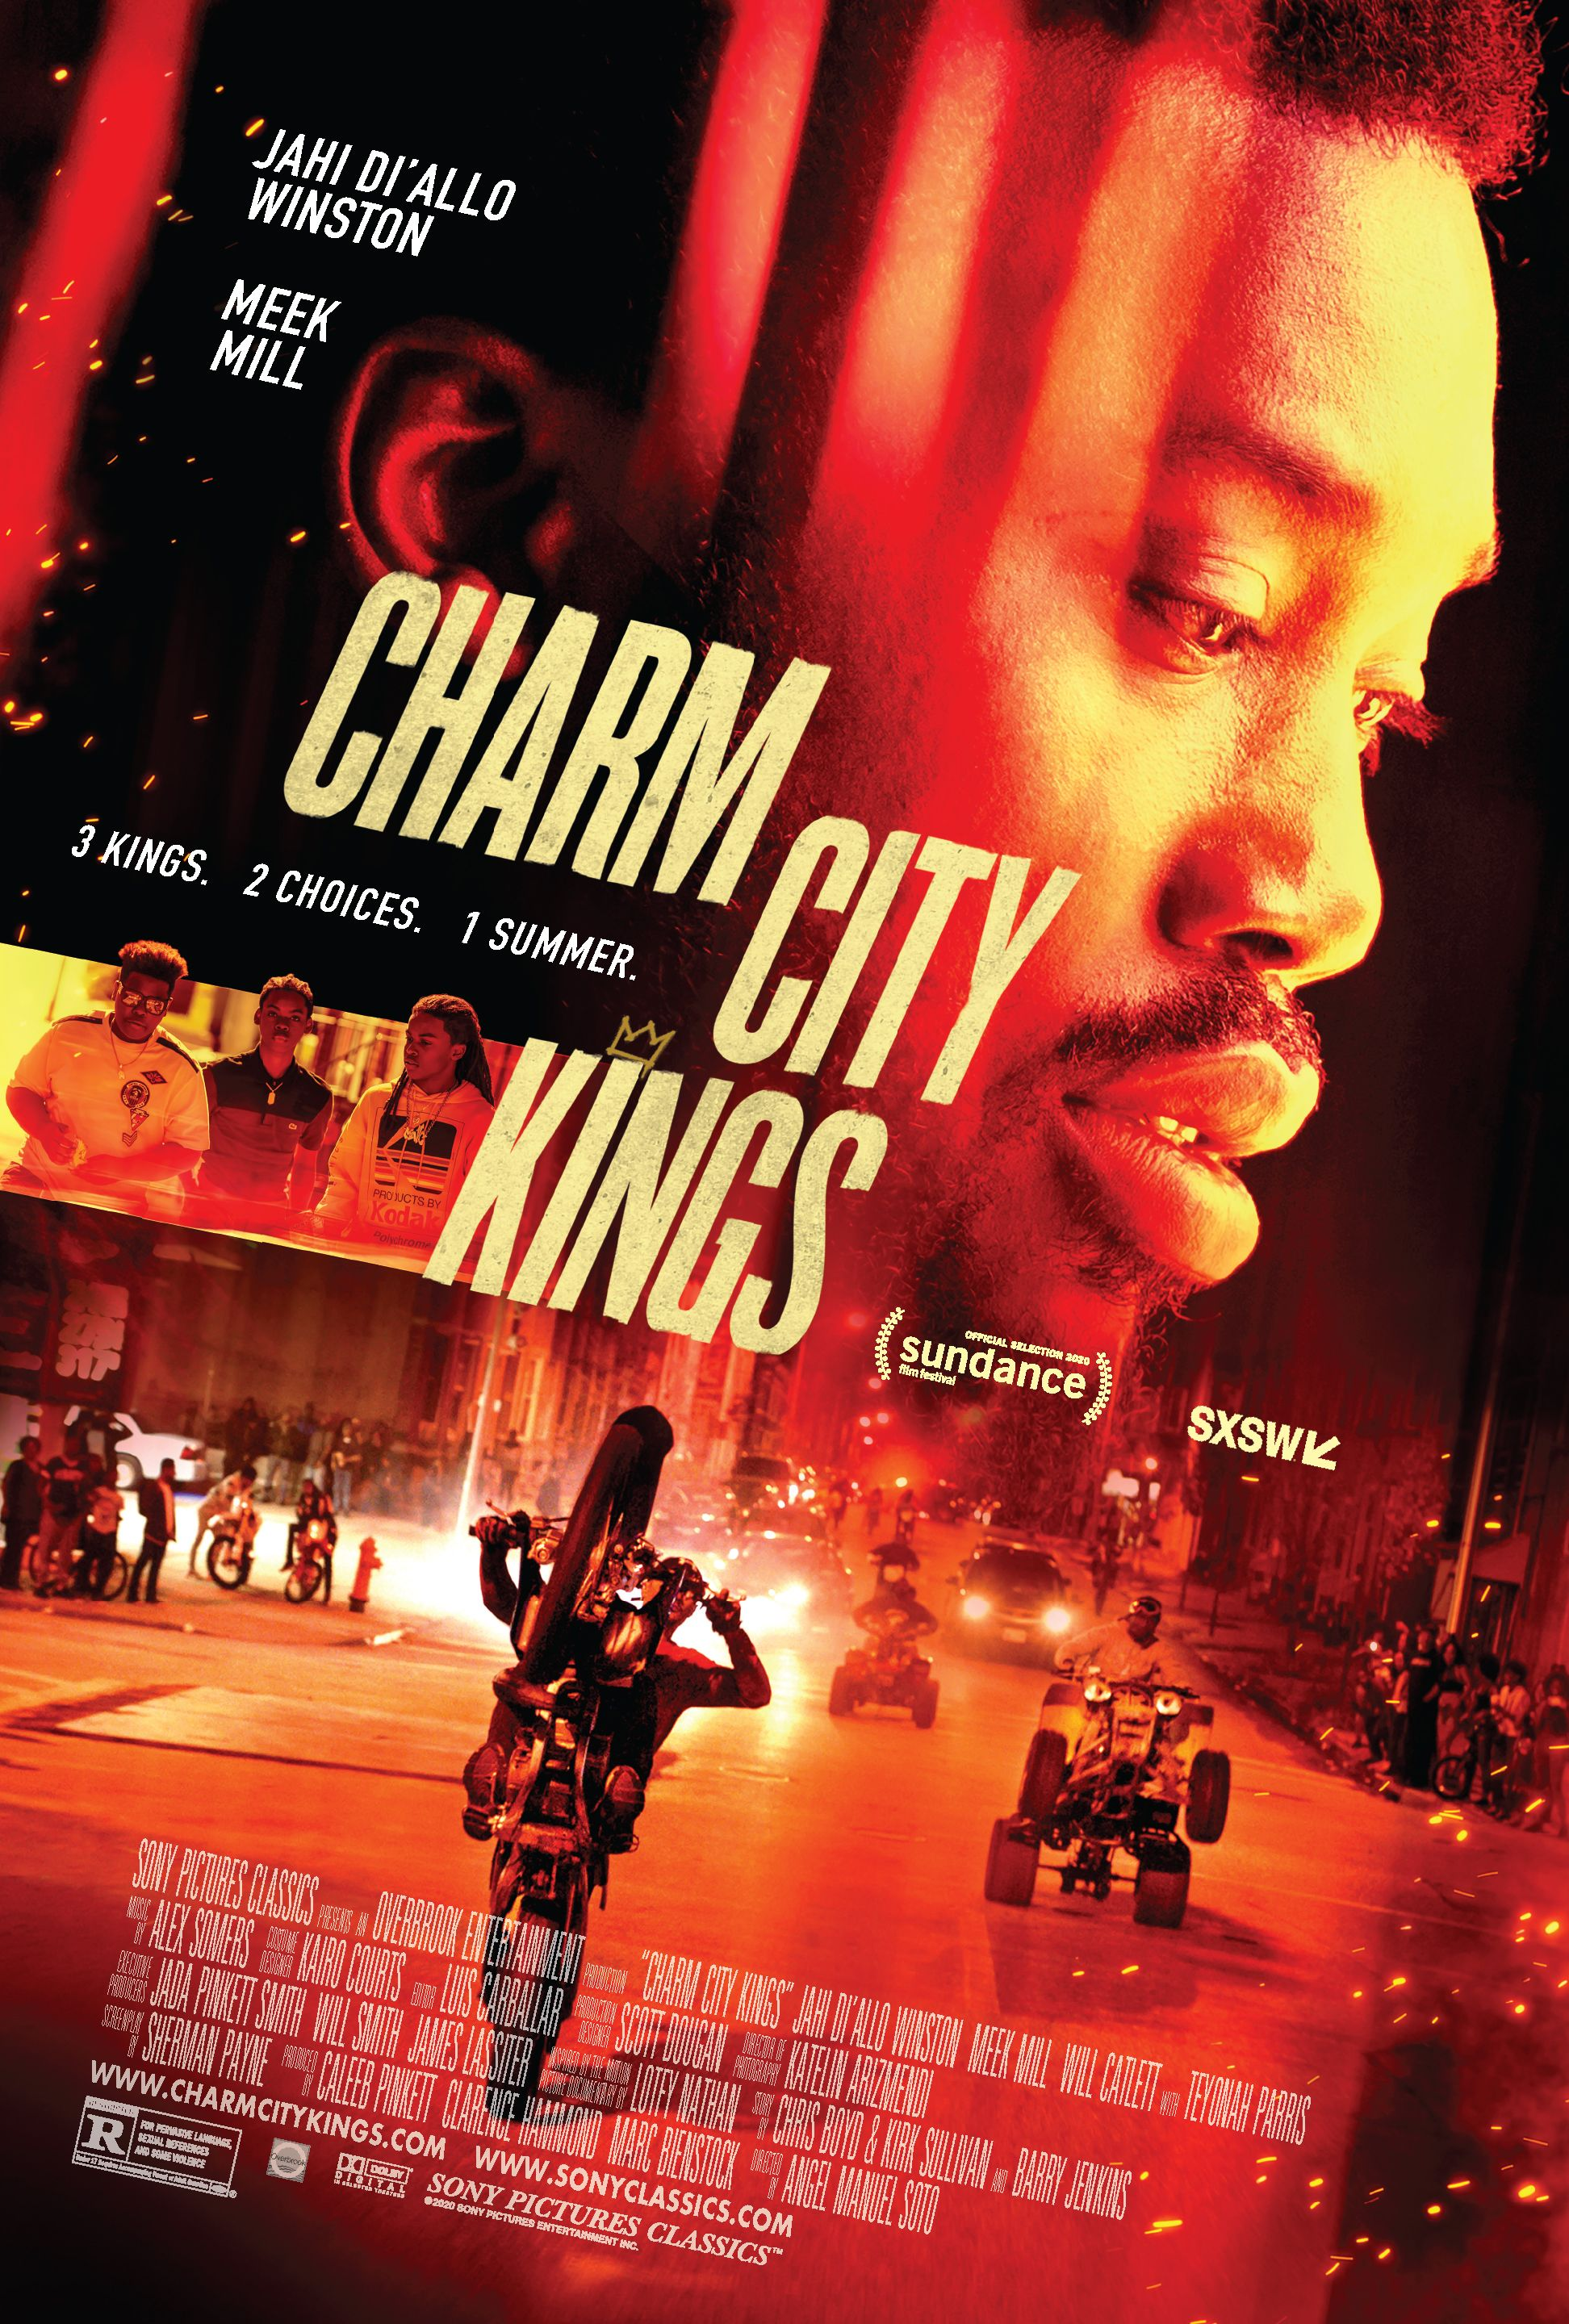 Charm city kings movie poster images by gray pictures llc